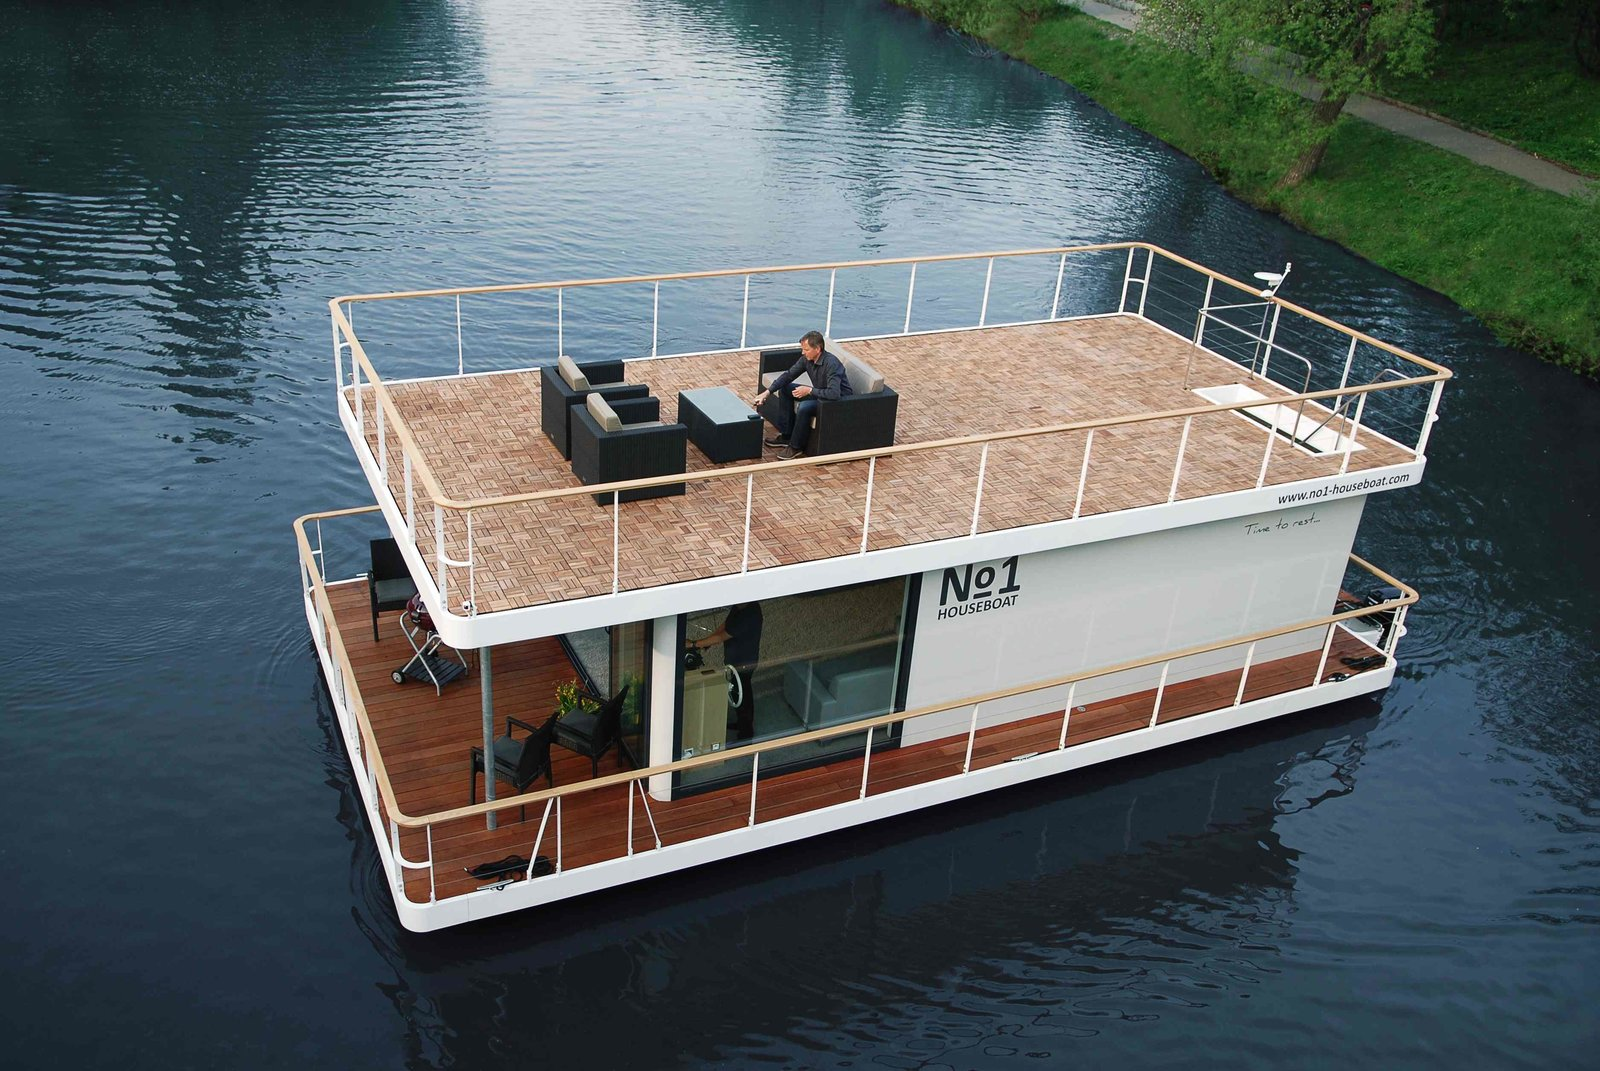 Based in the Czech Republic, No 1 Living builds houseboats with an upper and lower deck and glazed interiors that make the best of the outdoor views. Founded in 2013, they offer two models of houseboats – the No1 Living 40' and the larger No1 Living 47', both equipped with a kitchen, full bathroom, bedrooms and generous storage spaces. The houses are built with highly durable, anticorrosion protected steel and polyethylene segmented floats, which offer excellent floatation.  Photo 2 of 7 in 6 Modular Houseboat and Floating Home Manufacturers Around the World